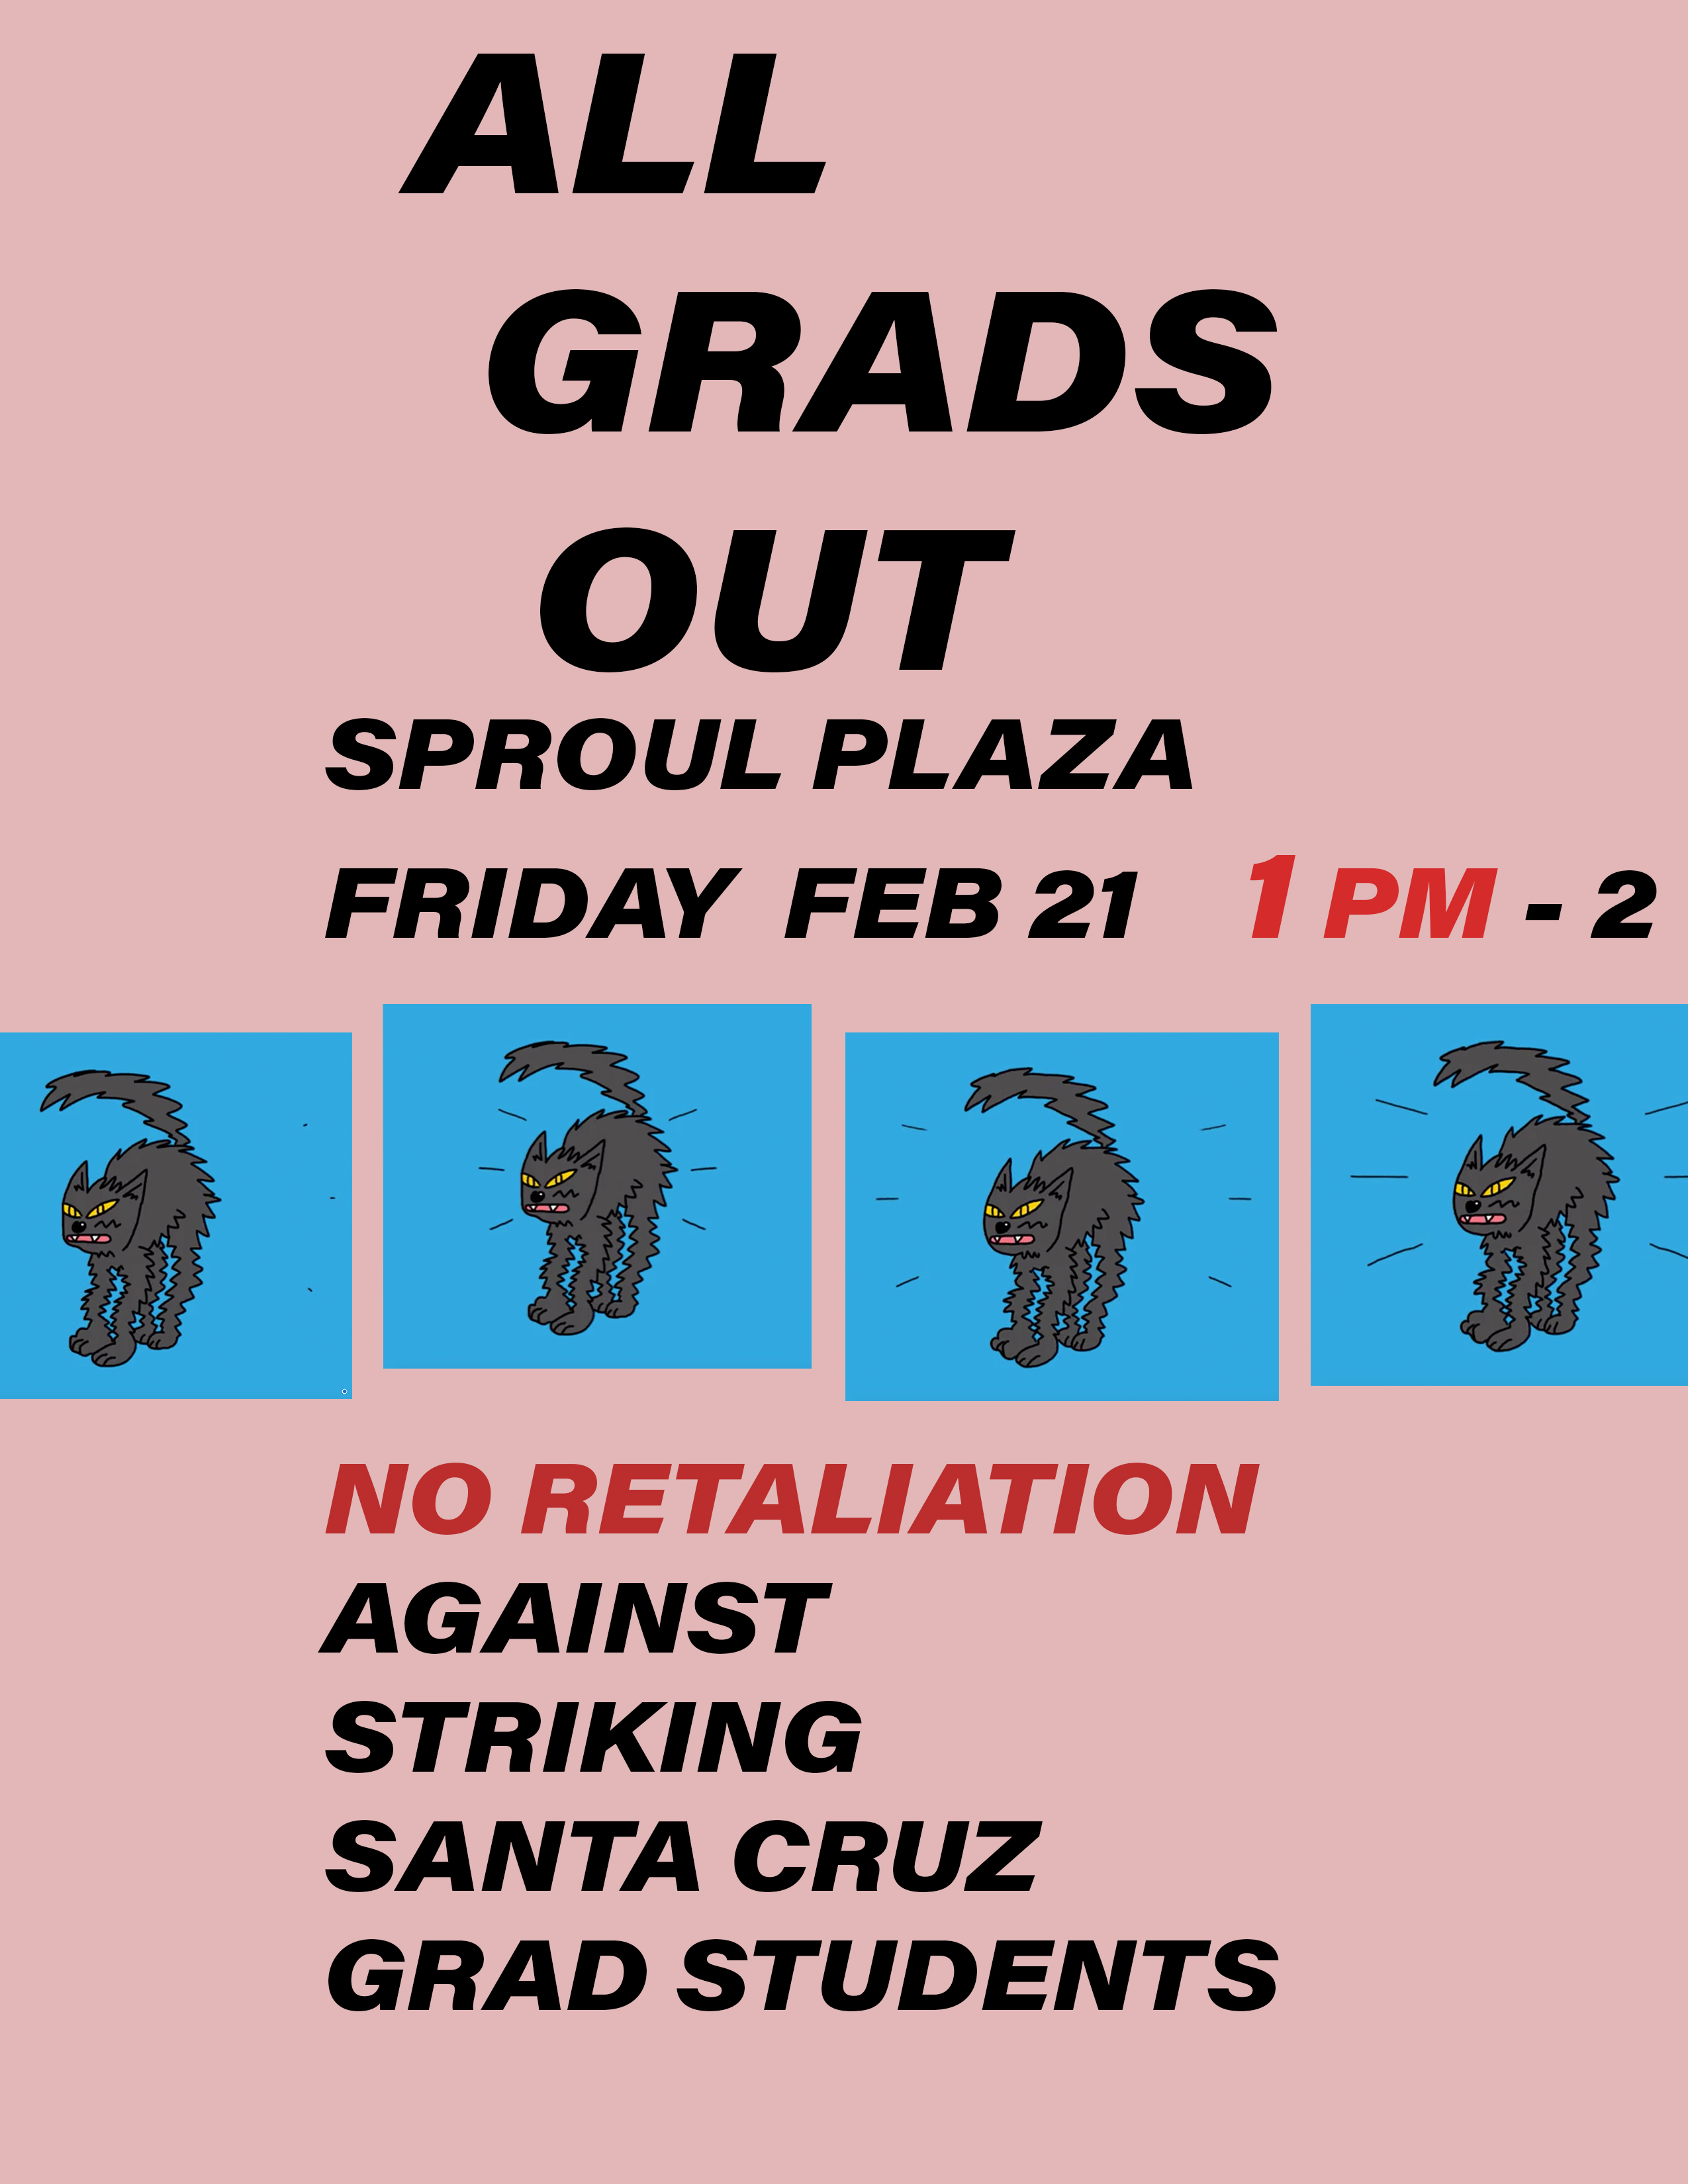 No Retaliation Against Striking Santa Cruz Grad Students @ Sproul Plaza